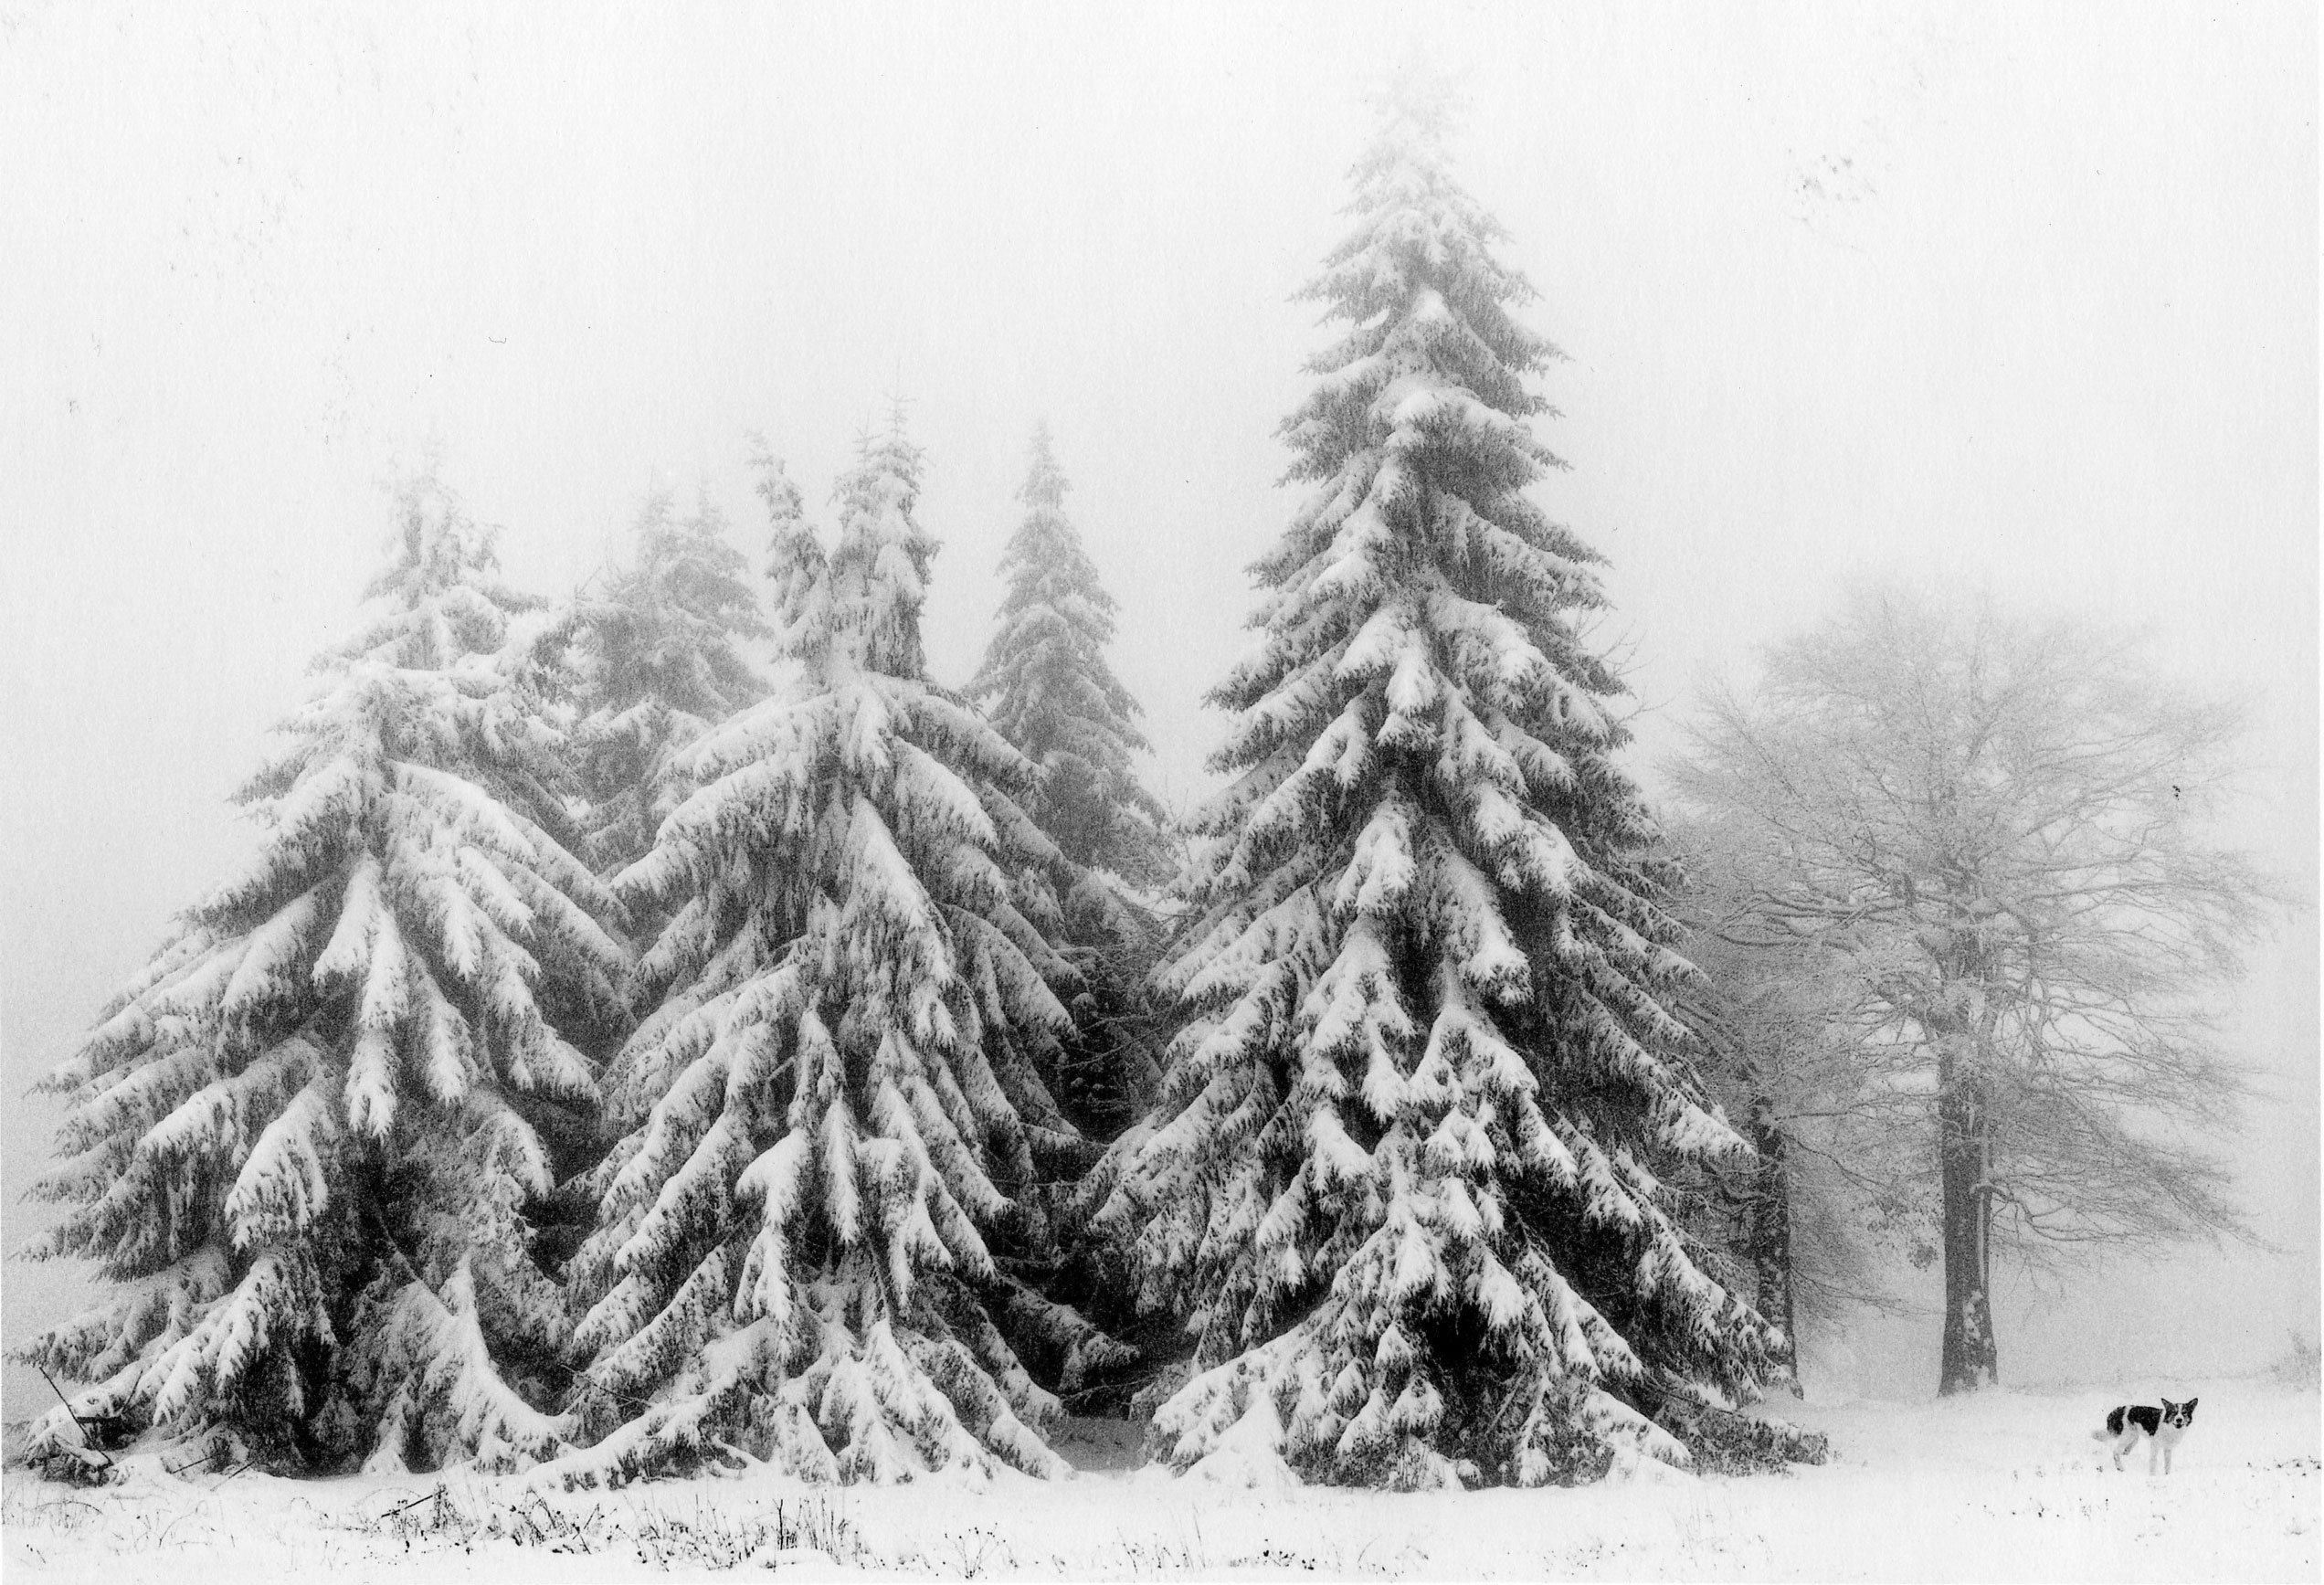 Petrohan, Bulgaria (Three Snow Covered Trees), 2003